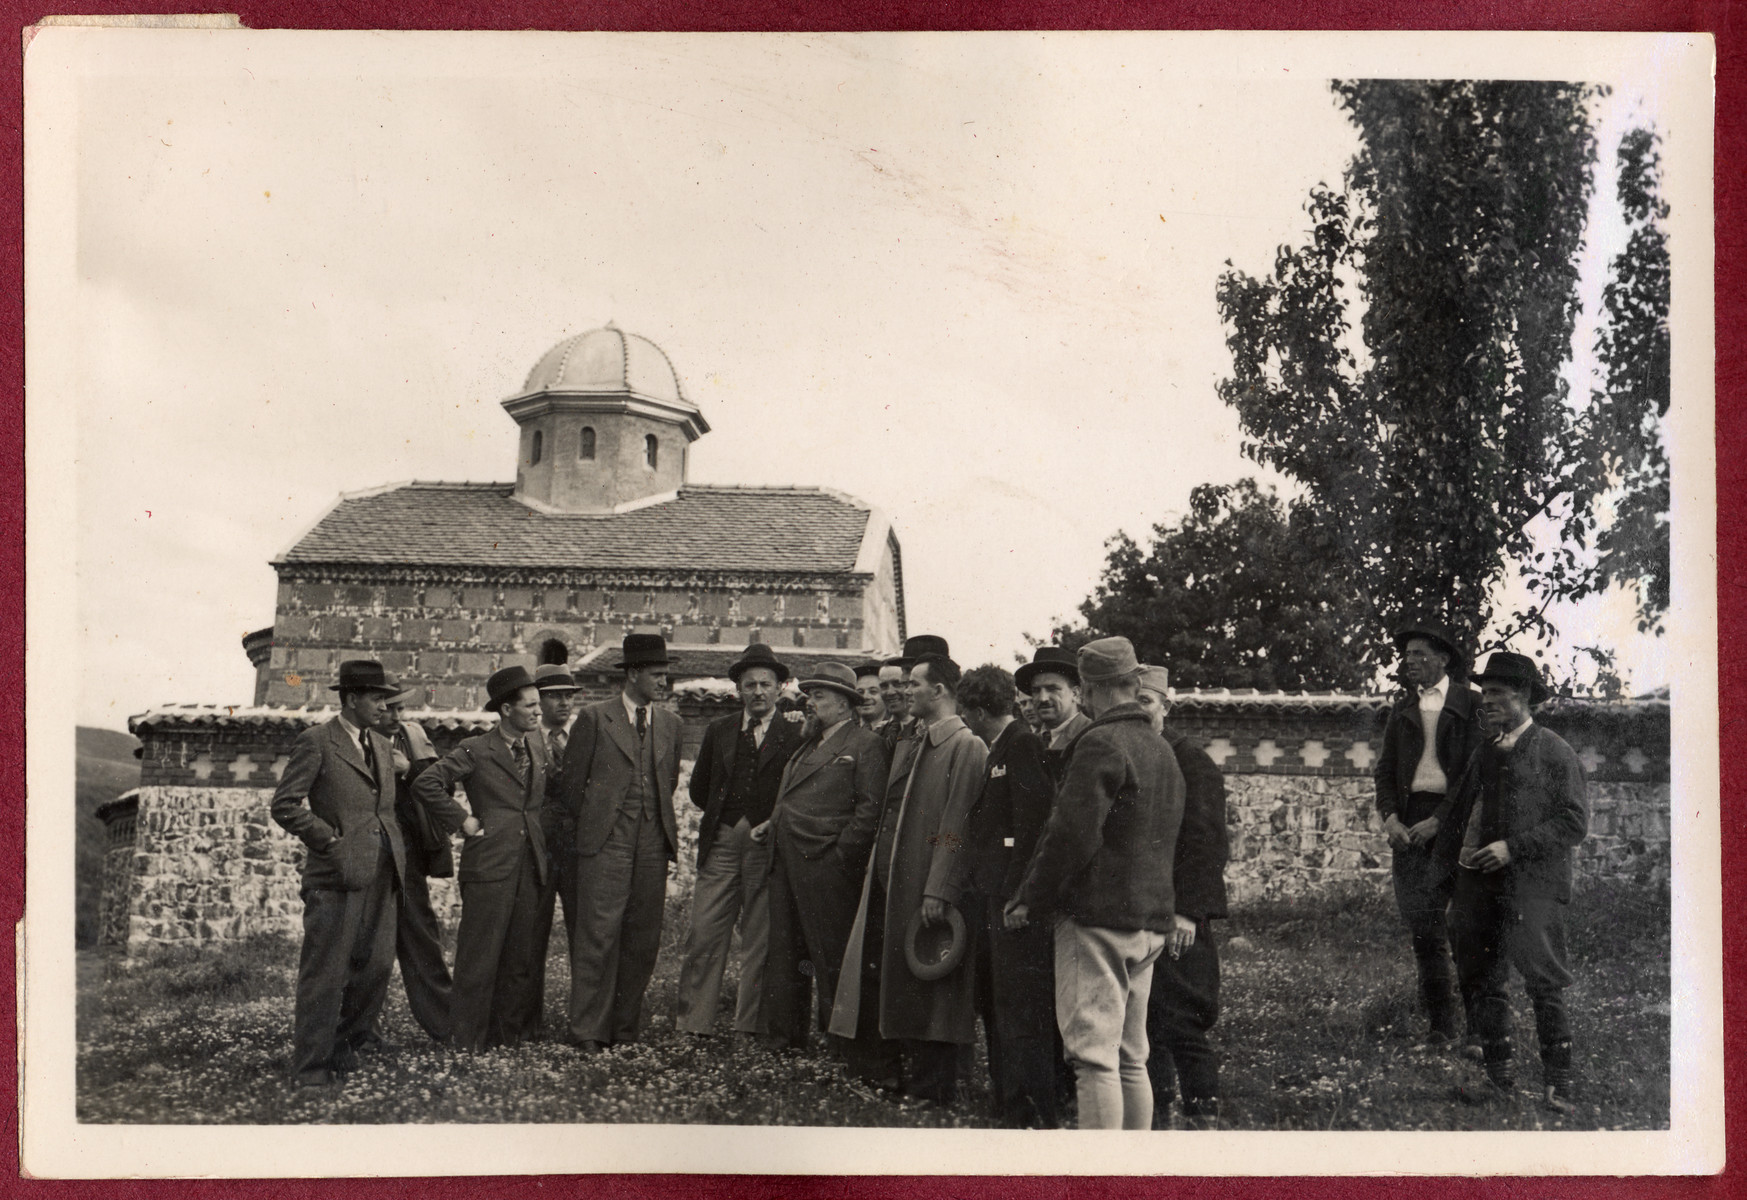 Jevrem Dragojevic poses with others before the wall of church.